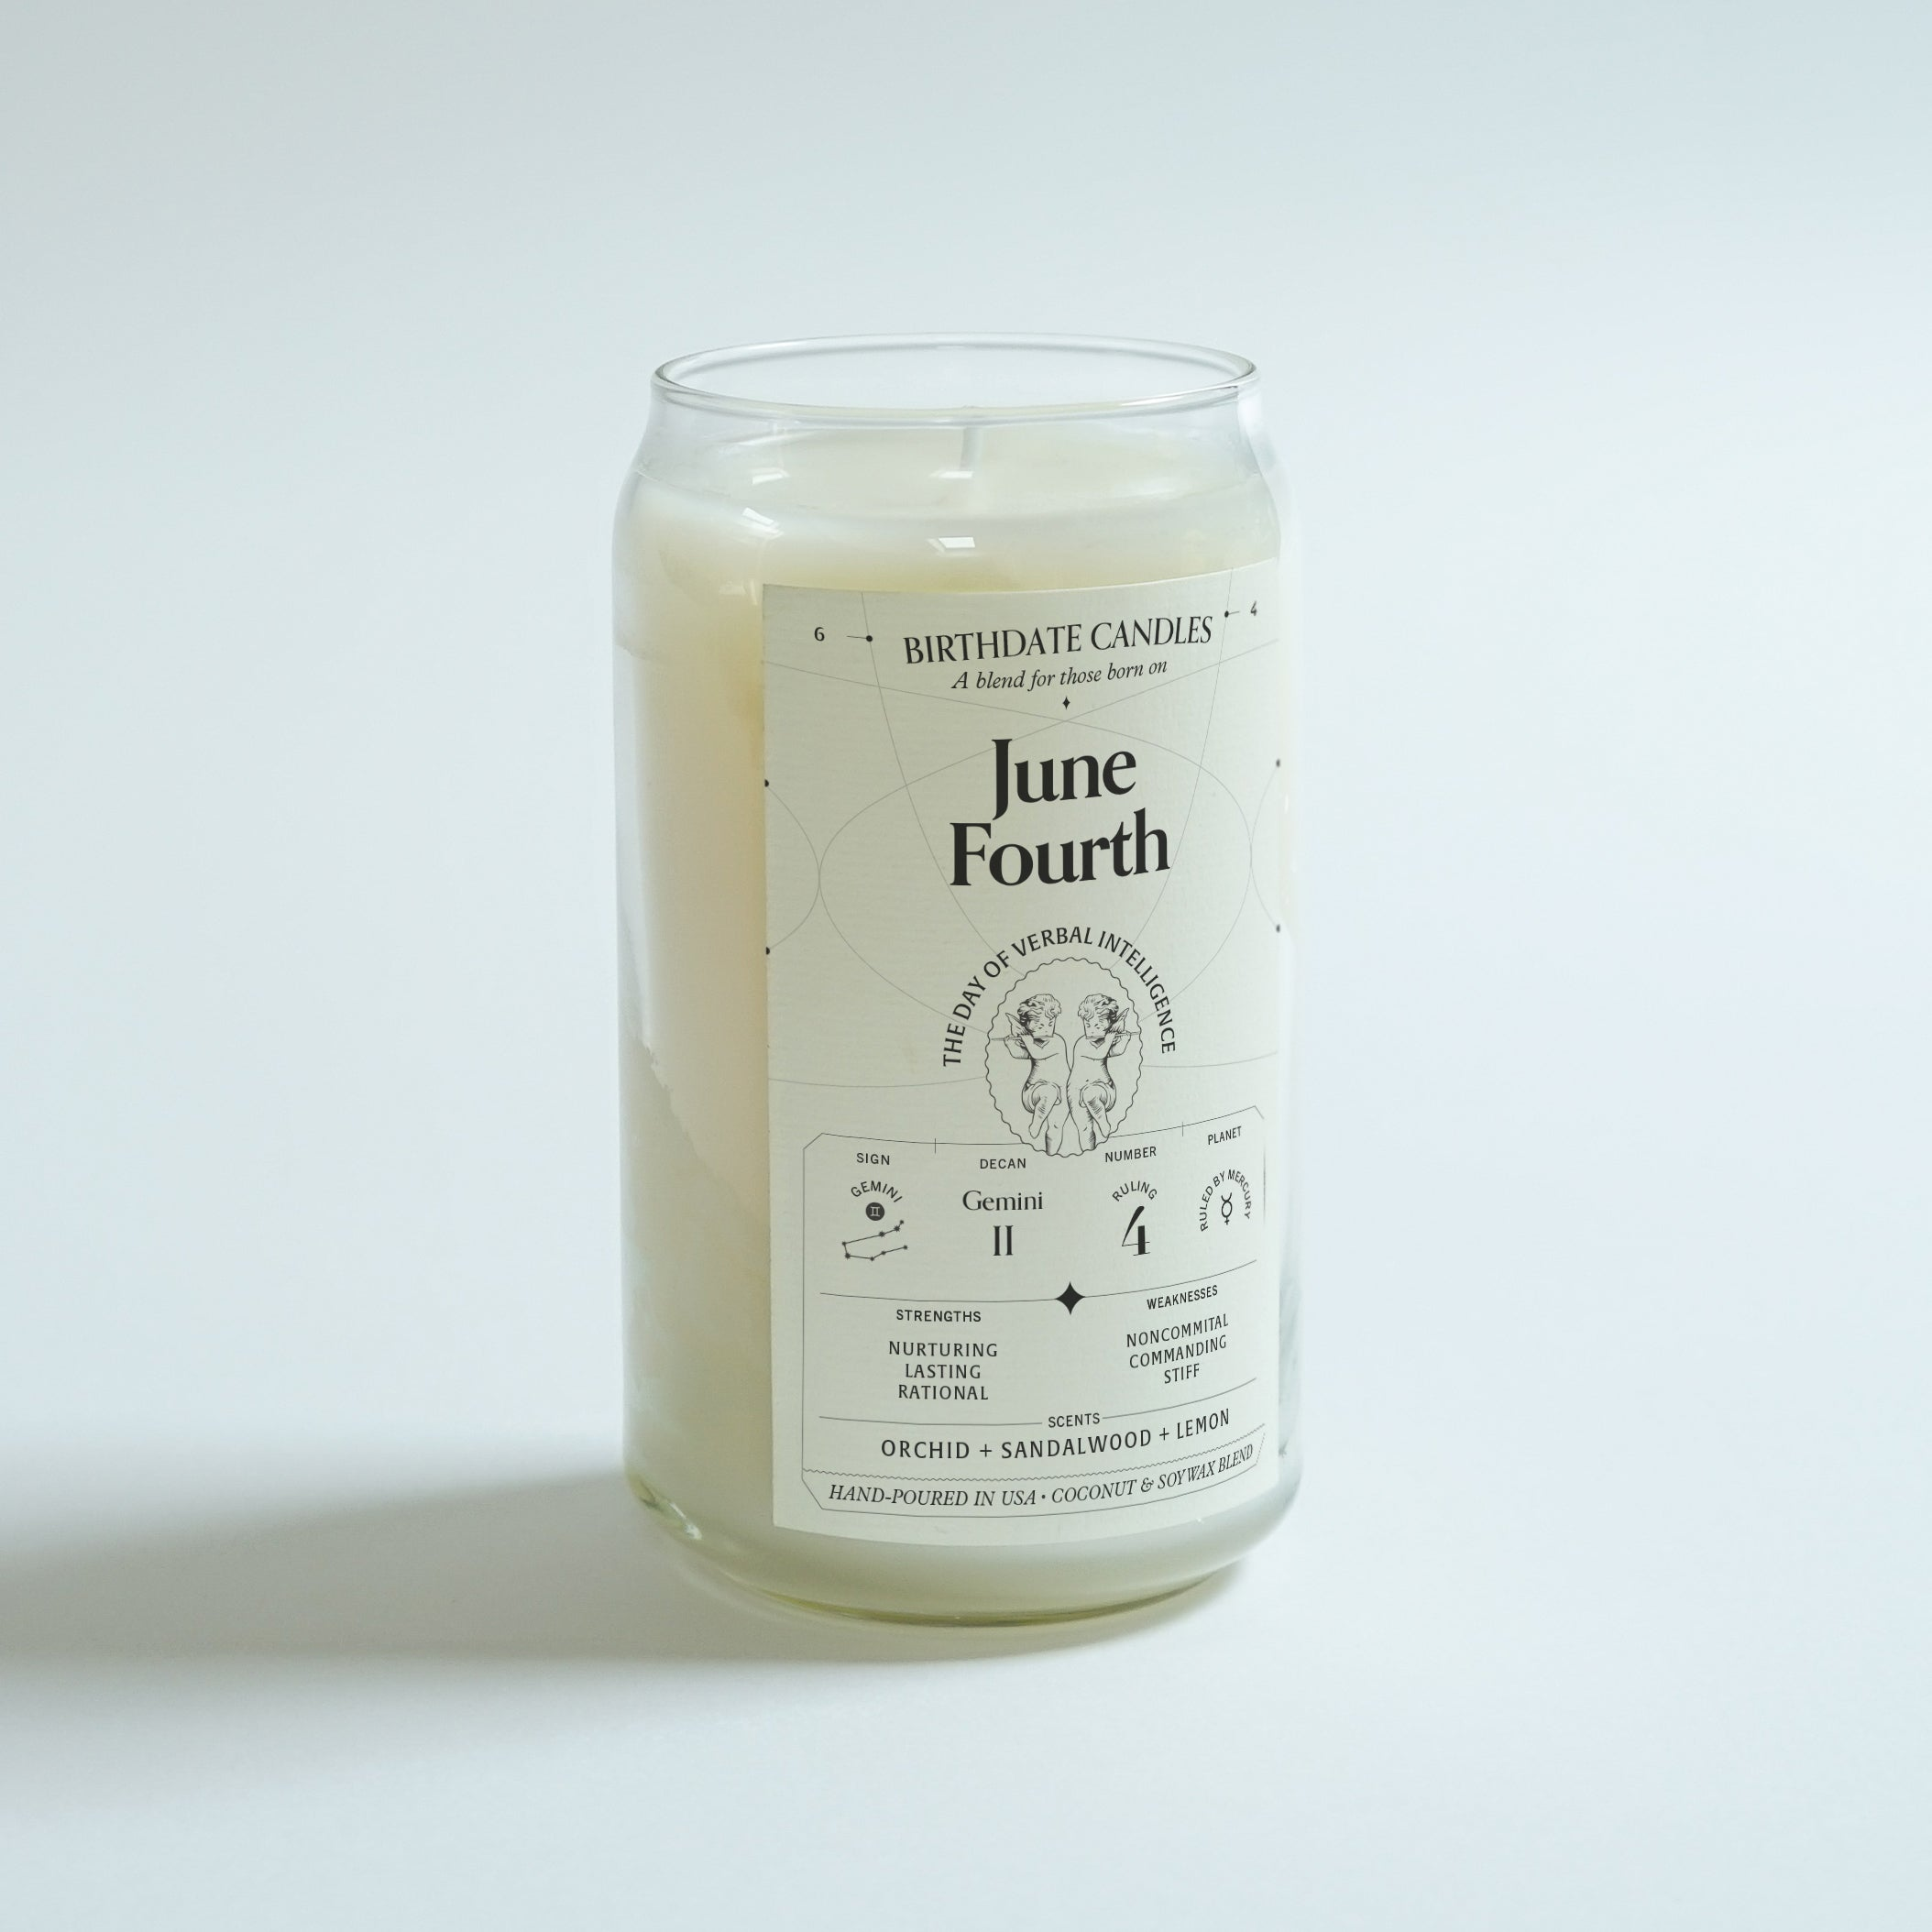 The June Fourth Candle